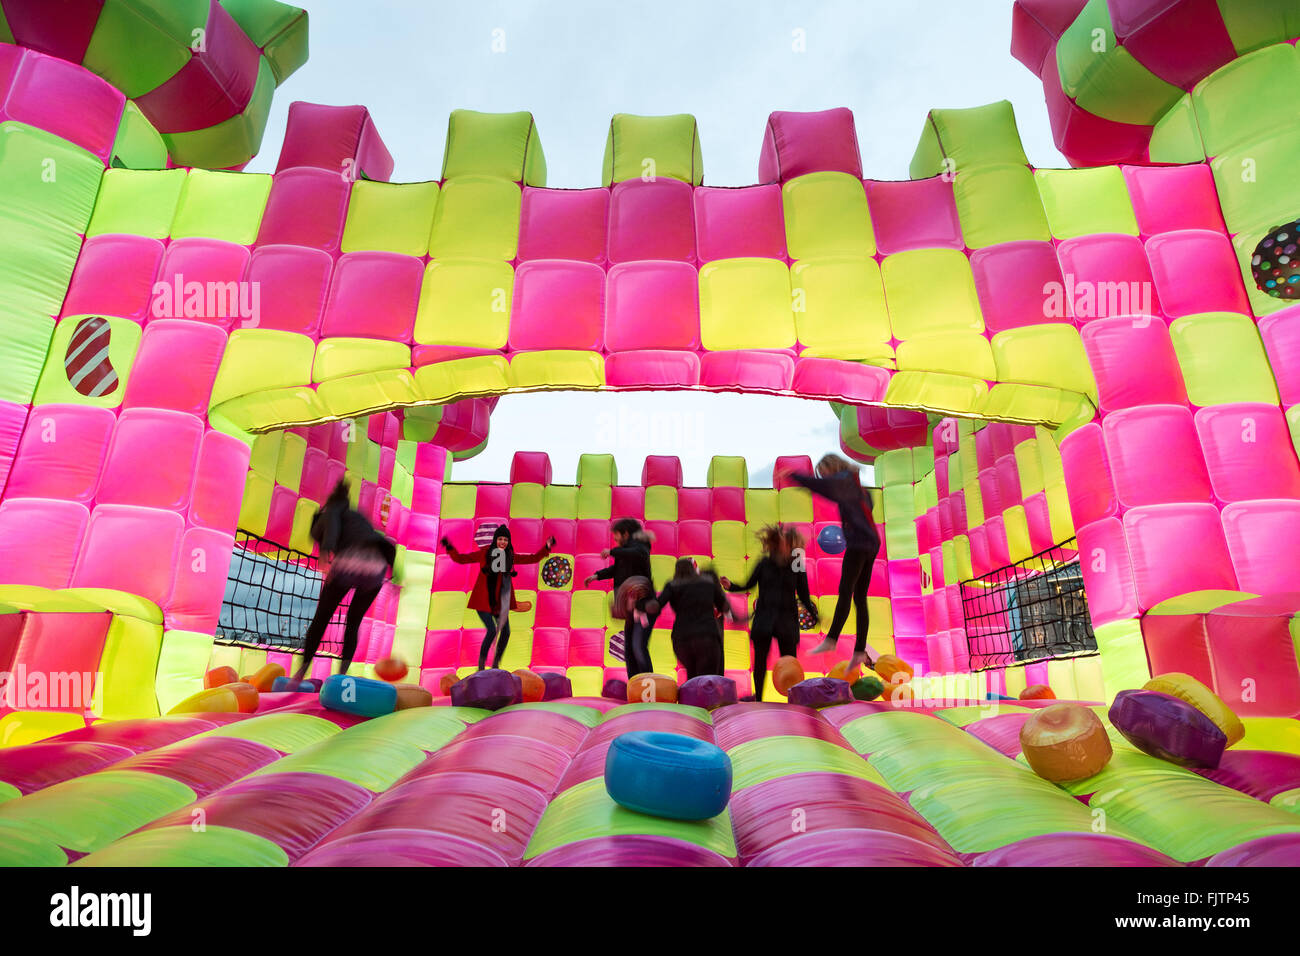 3rd march 2016 bouncingham castle candy crush jelly saga promo bouncy castle is launched near tower bridge credit guy corbishleyalamy live news - Violet Castle 2016